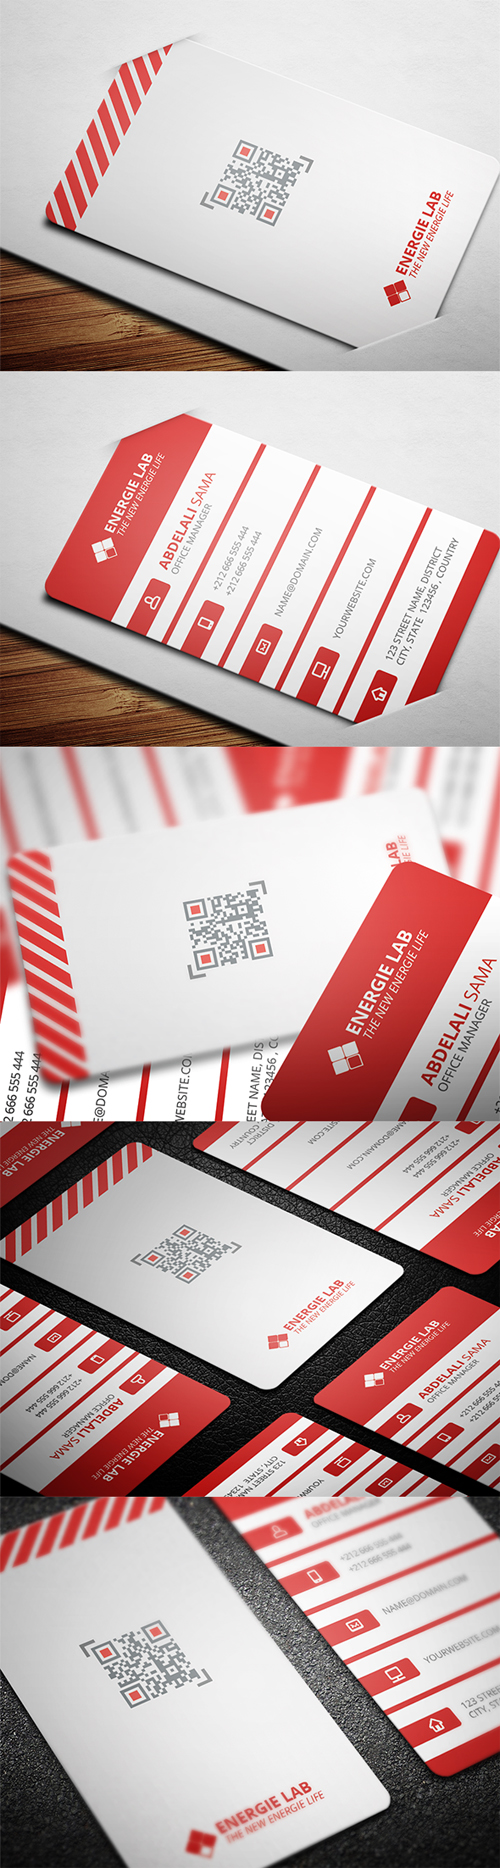 business cards template design - 6